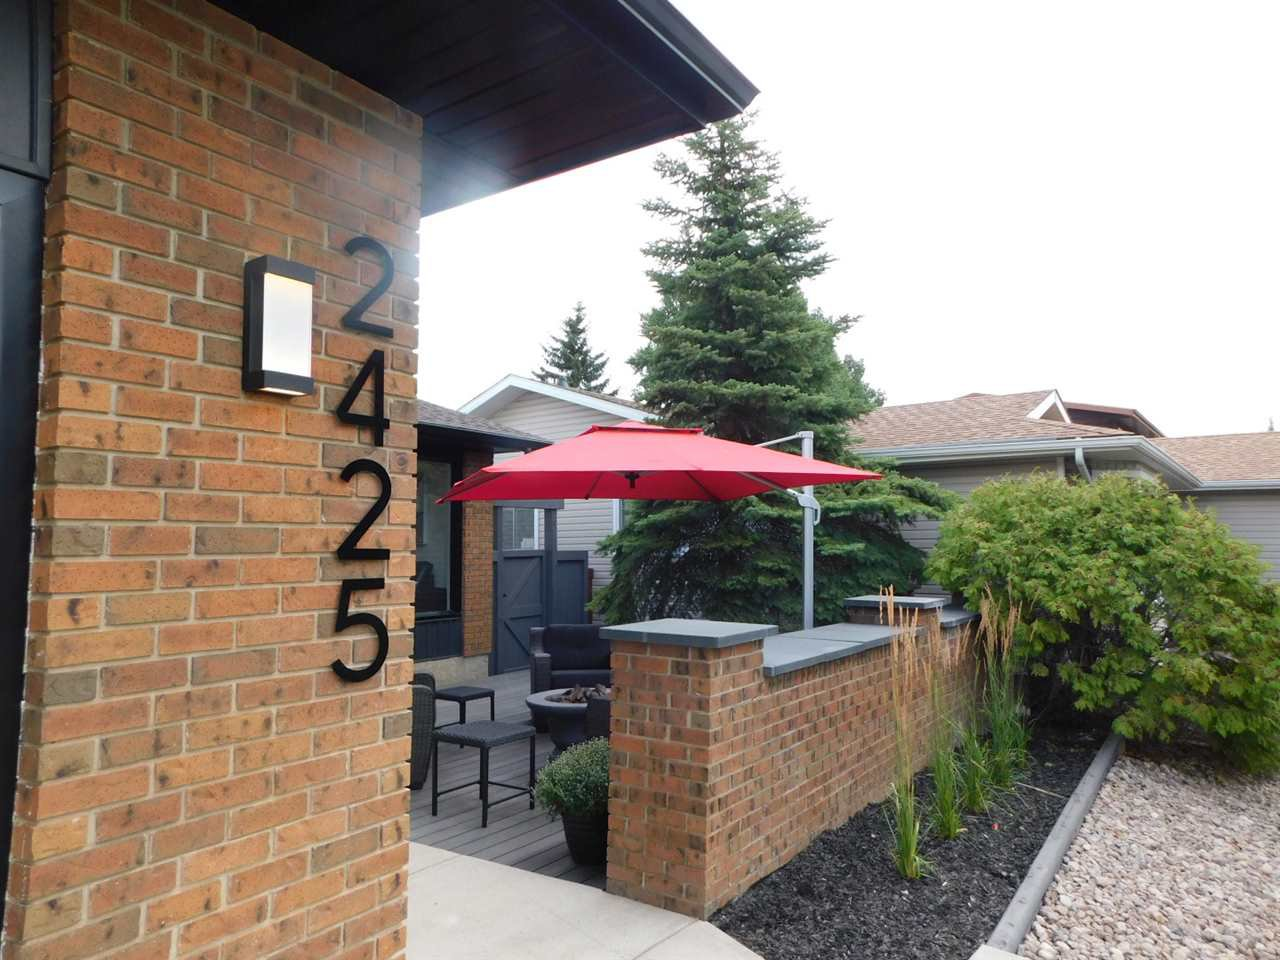 Main Photo: 2425 111A Street in Edmonton: Zone 16 House for sale : MLS®# E4171558